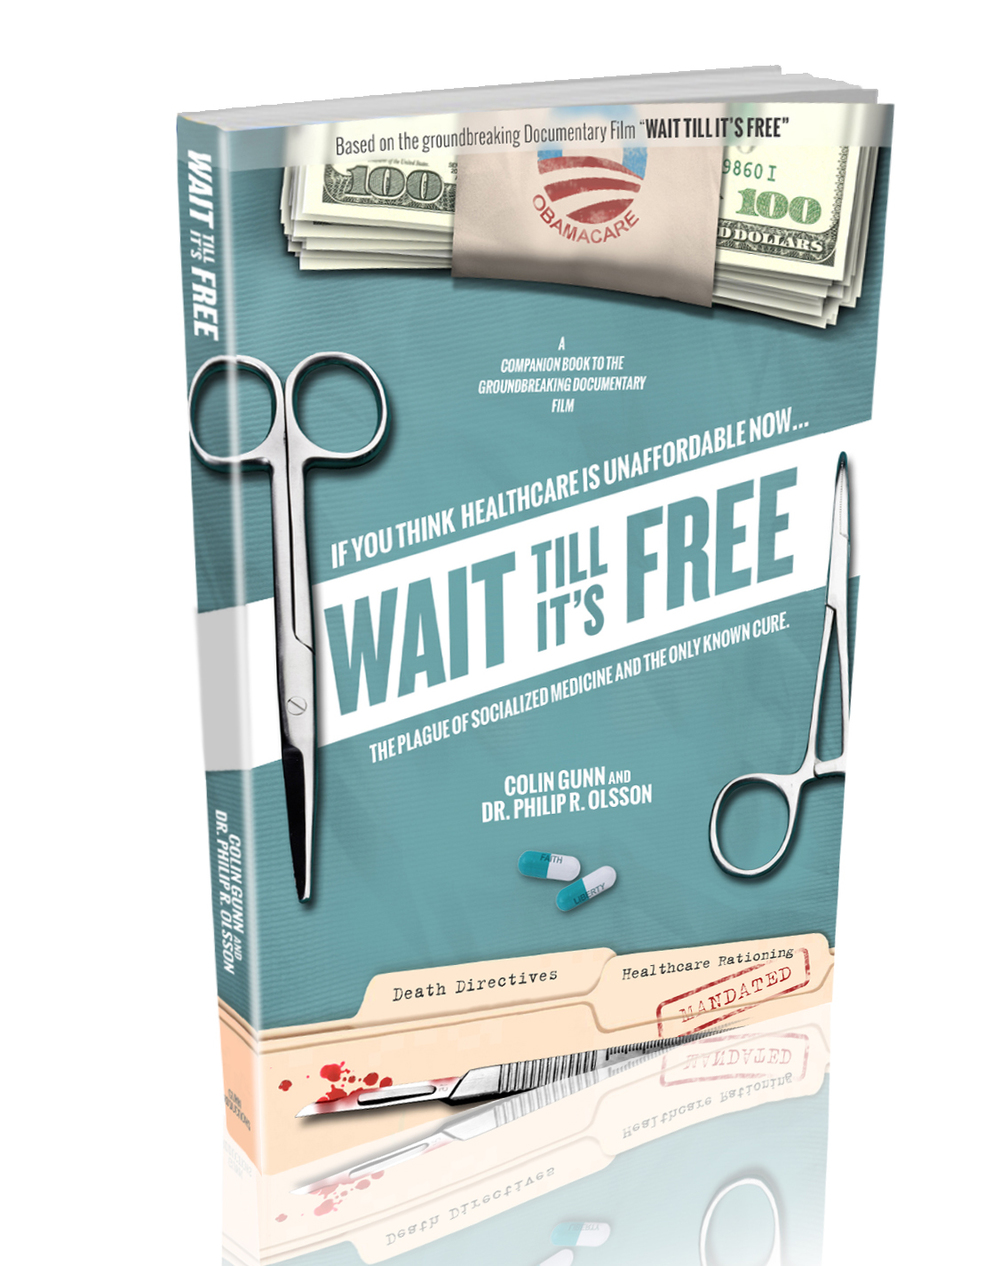 The new 'Wait Till It's Free' 164 page book!